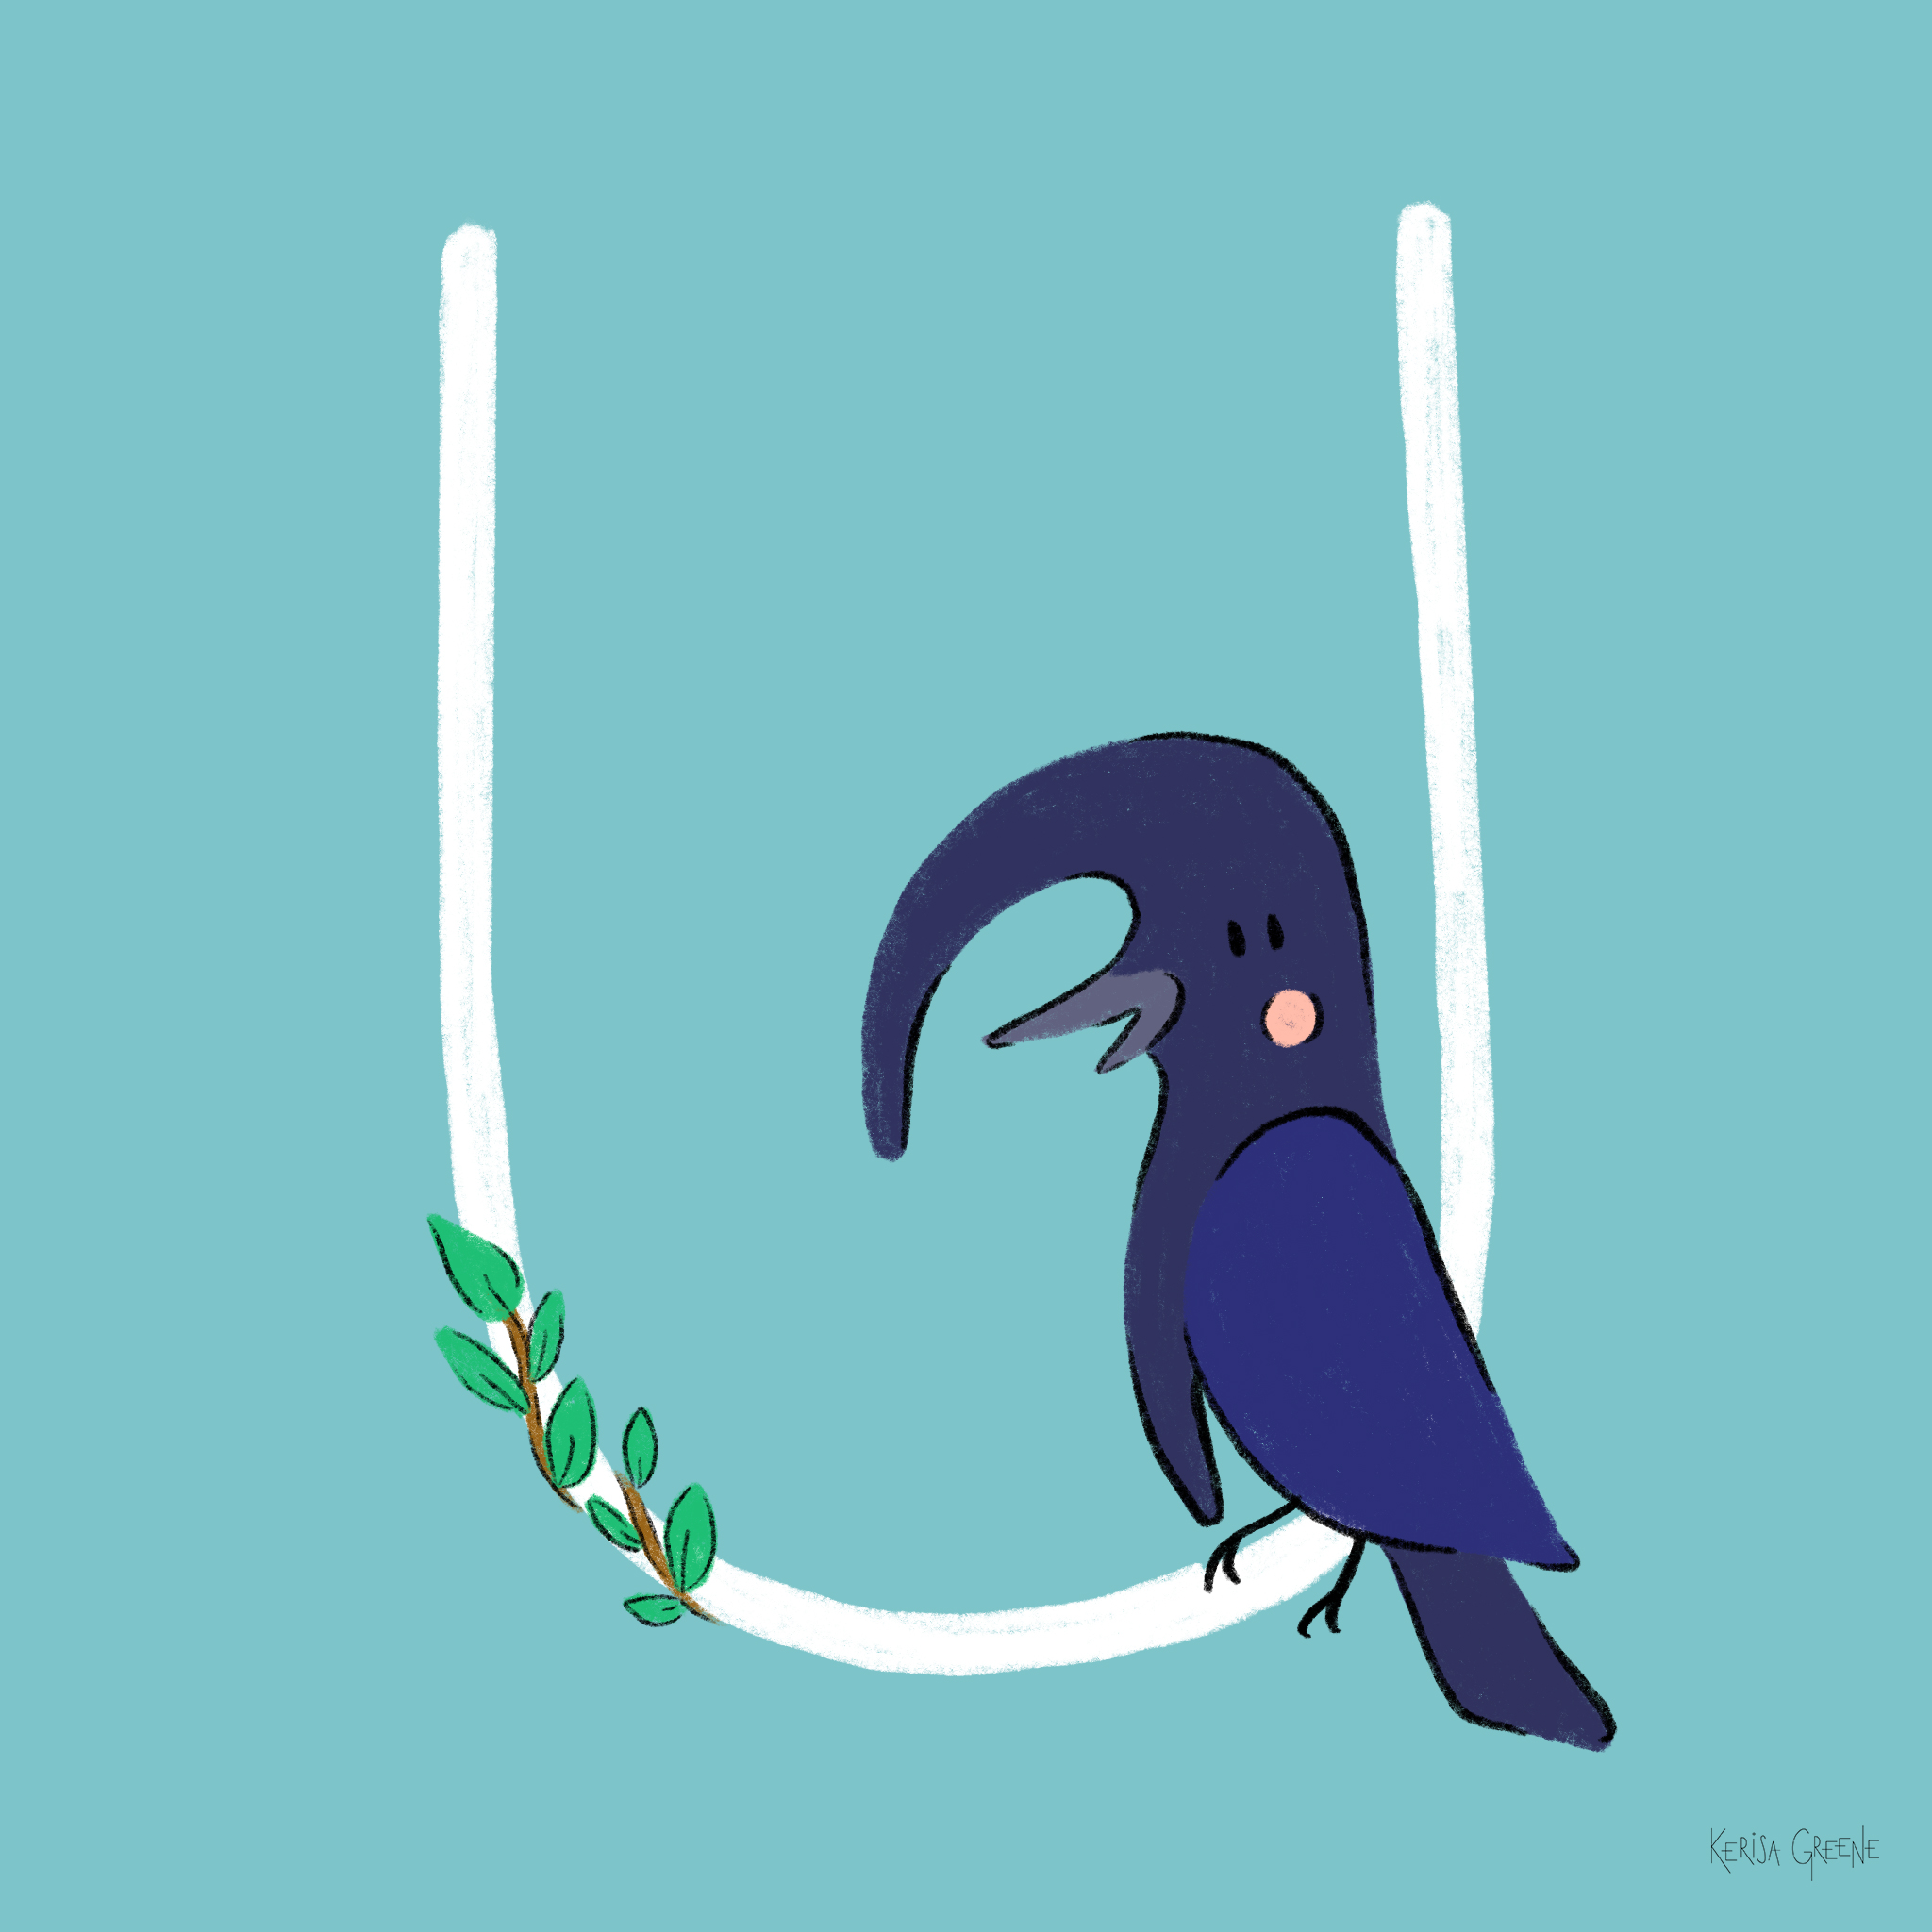 U is for Umbrella Bird  These birds are altitudinal migrants, which means they migrate to different altitudes in the mountains instead of migrating across the land.